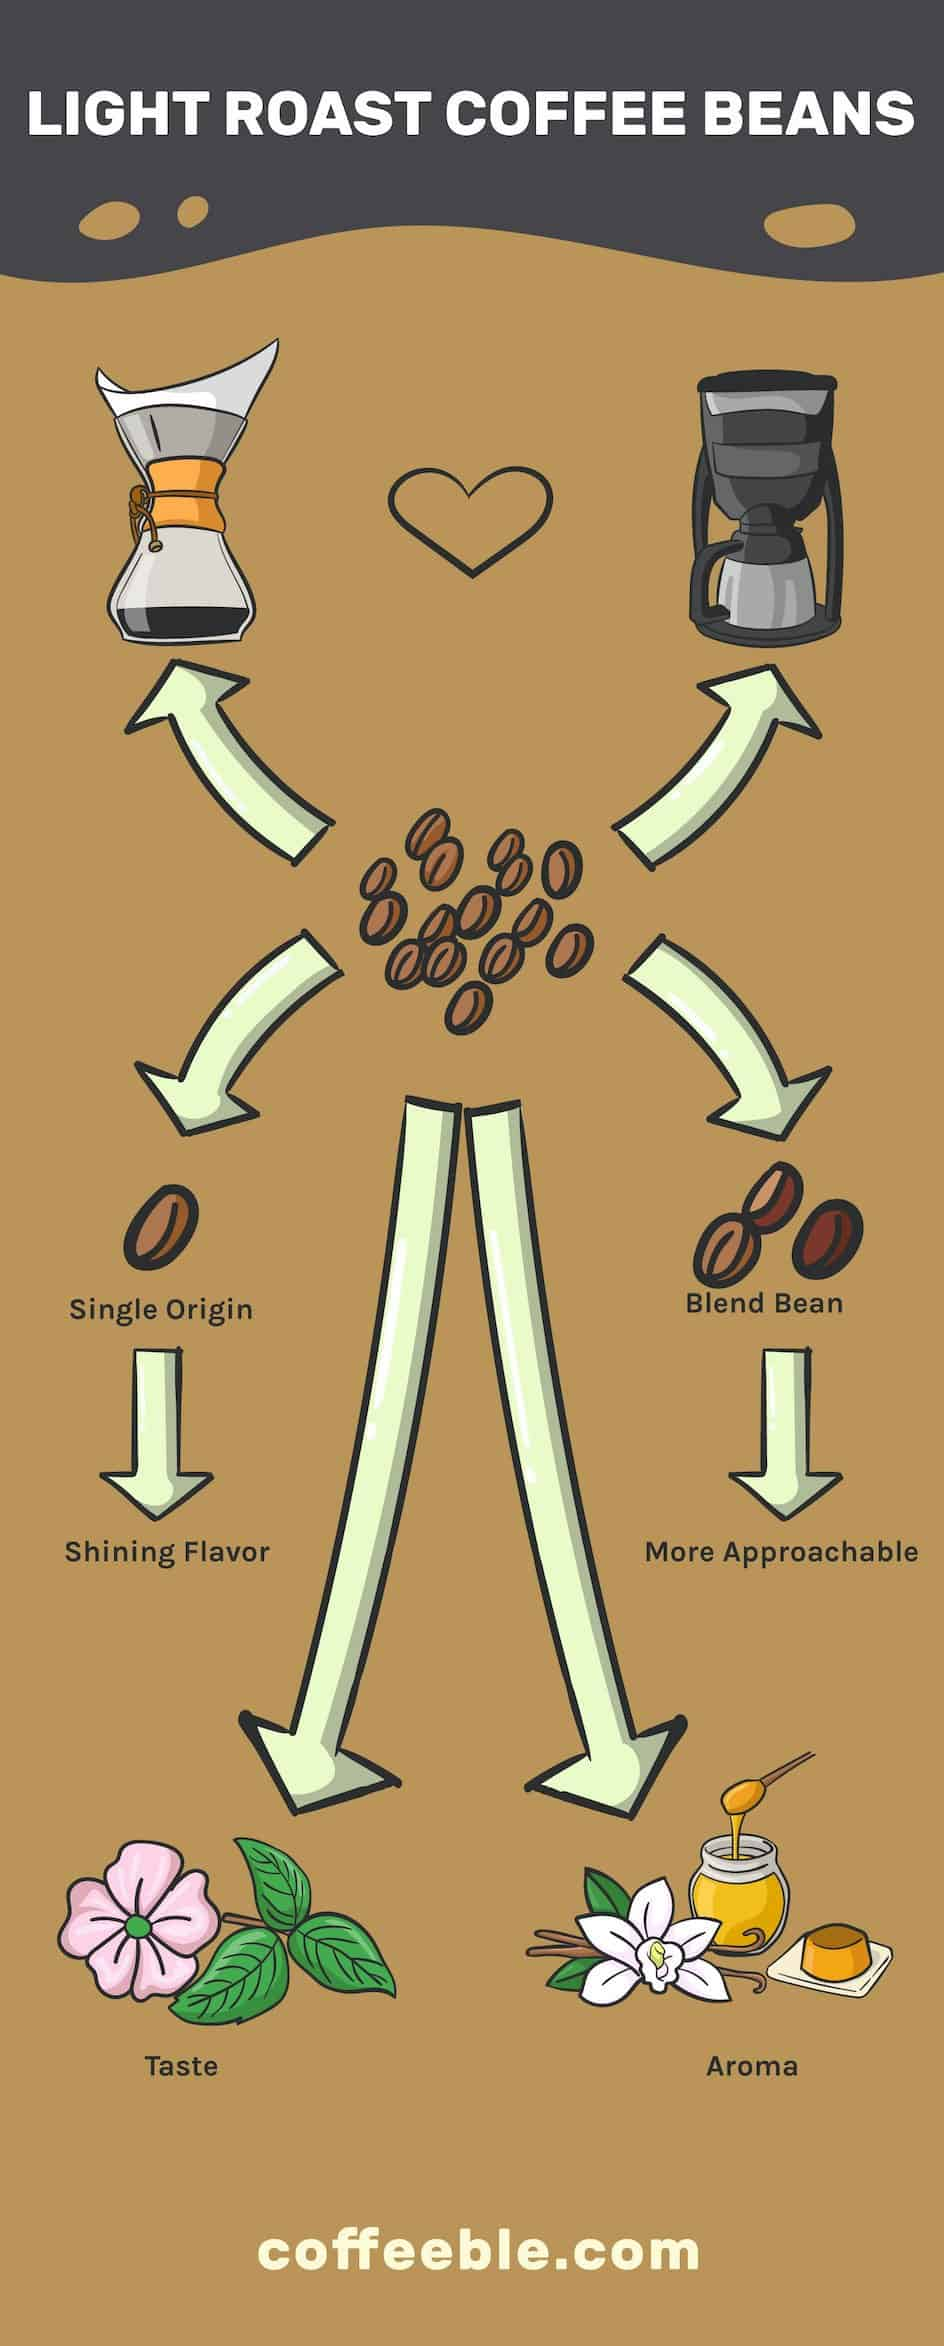 Infographic explaining what light roast beans best go with and what flavors do they have